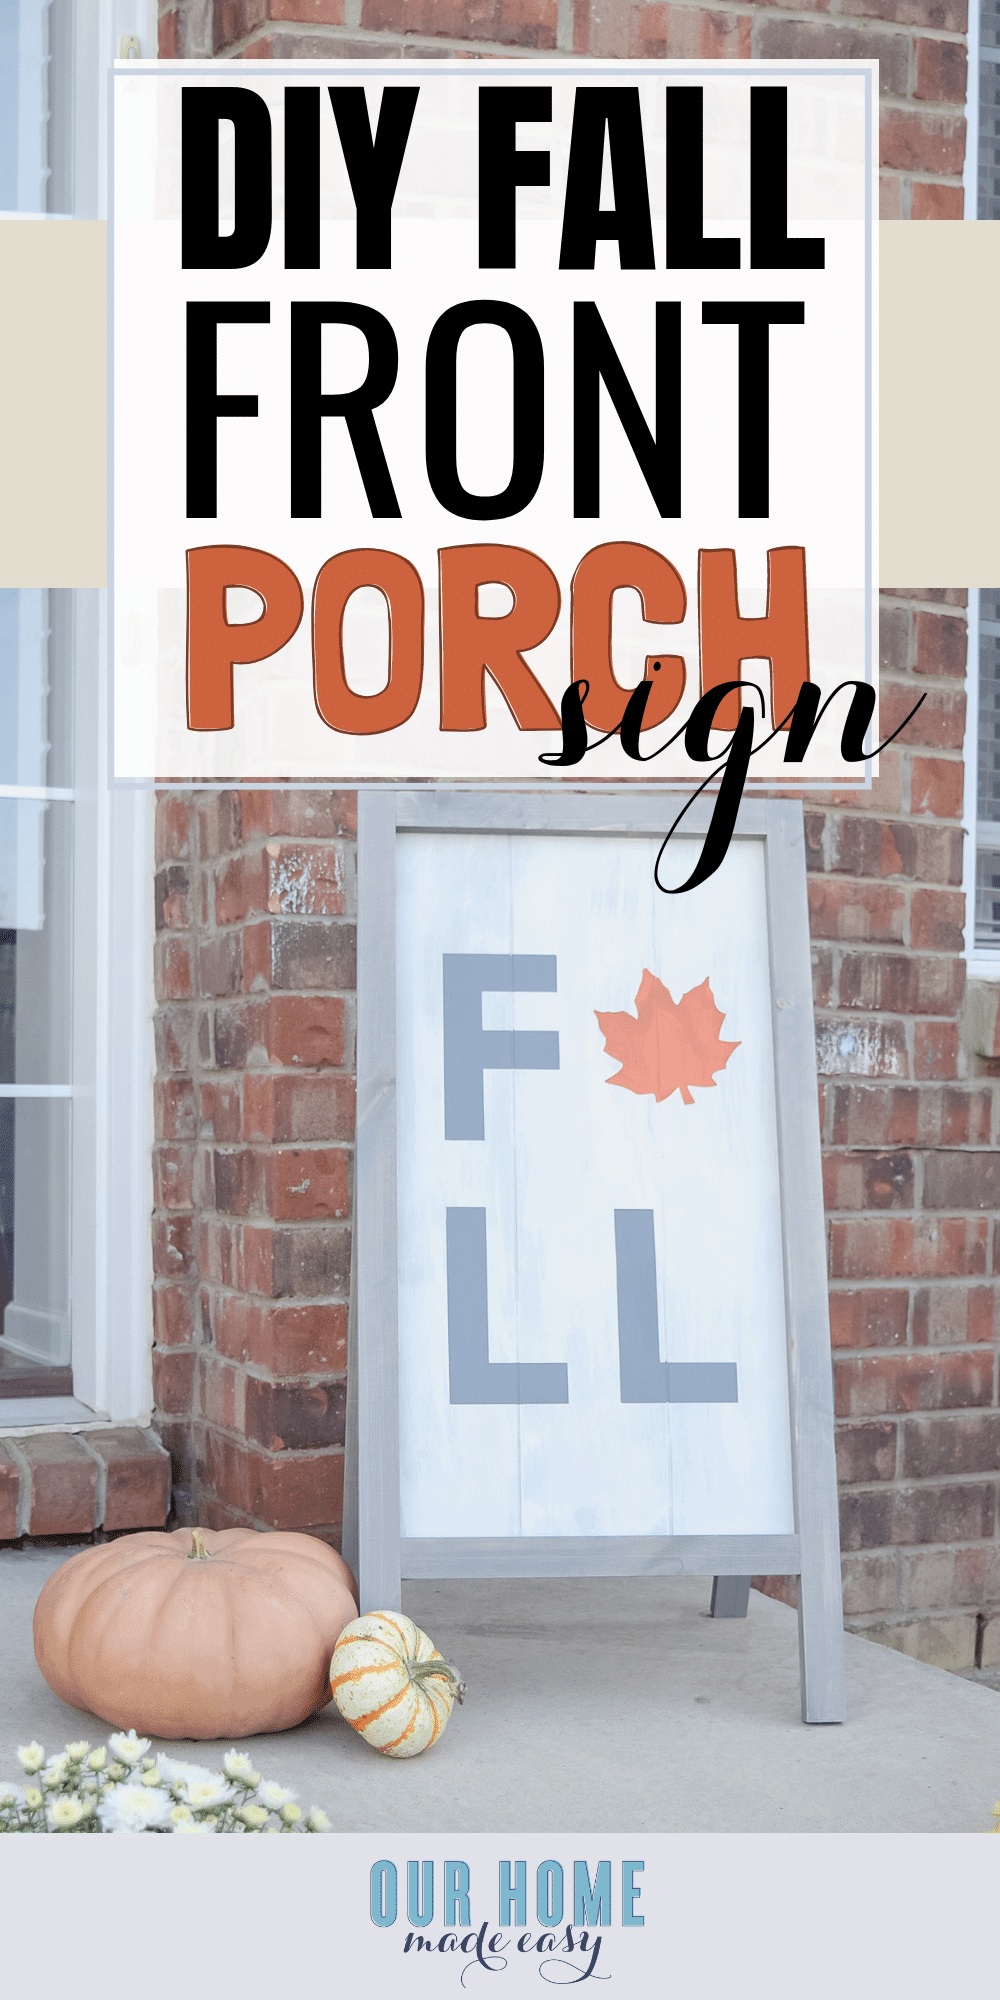 This DIY wooden fall sign is super easy to make! You can lean it against your wall or add support legs to stand it on it's own. Find the DIY sign tutorial here! #fall #homedecor #home #diy #farmhouse #sig